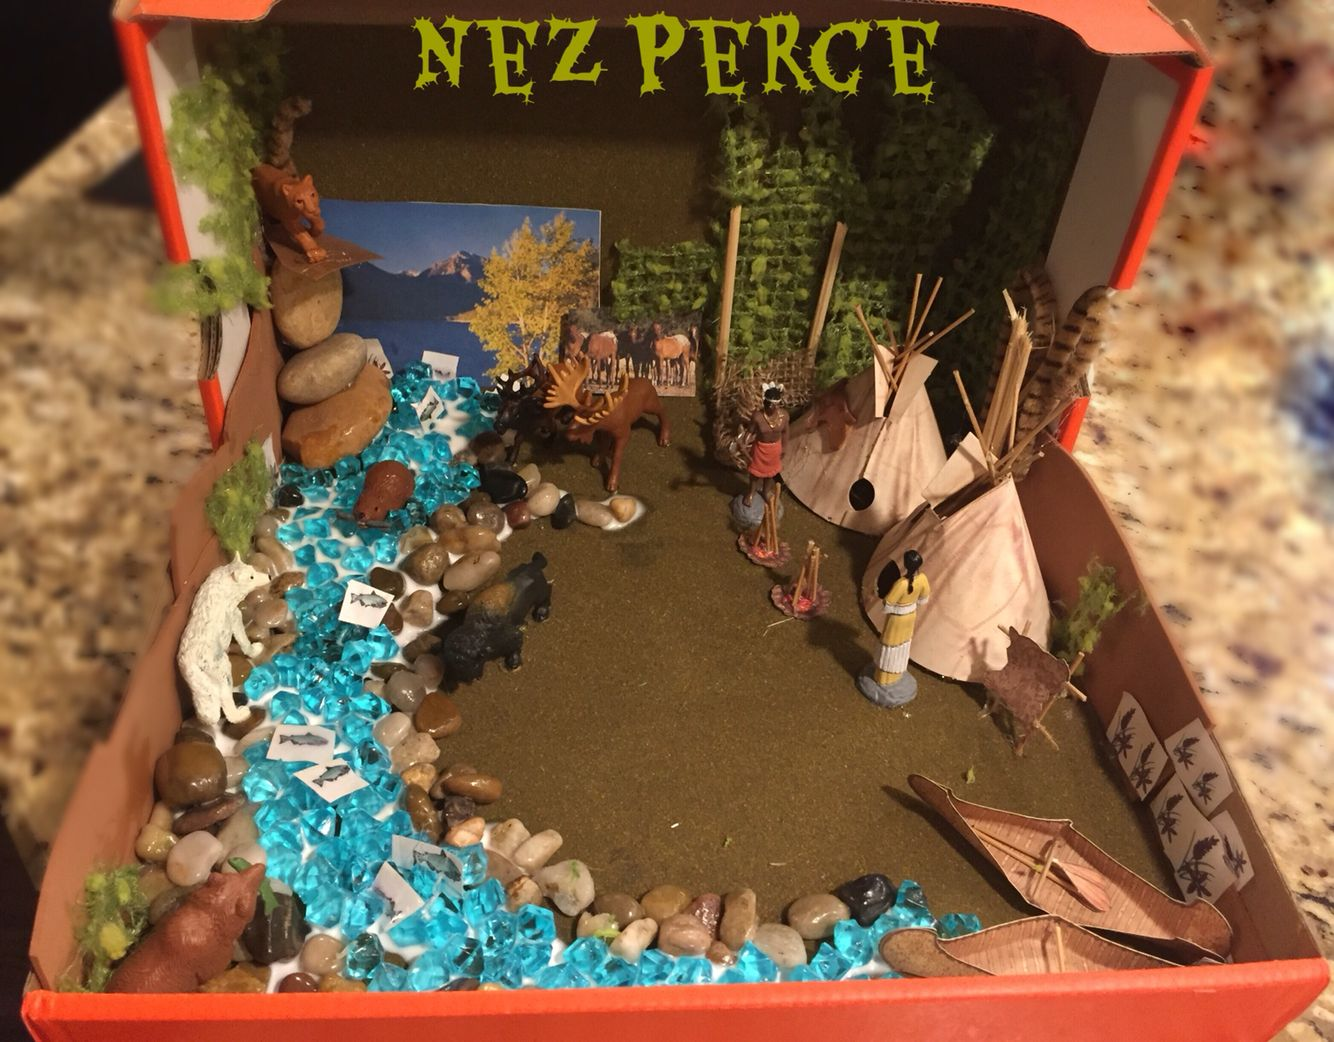 25 best ideas about perce on pinterest hacks use test and